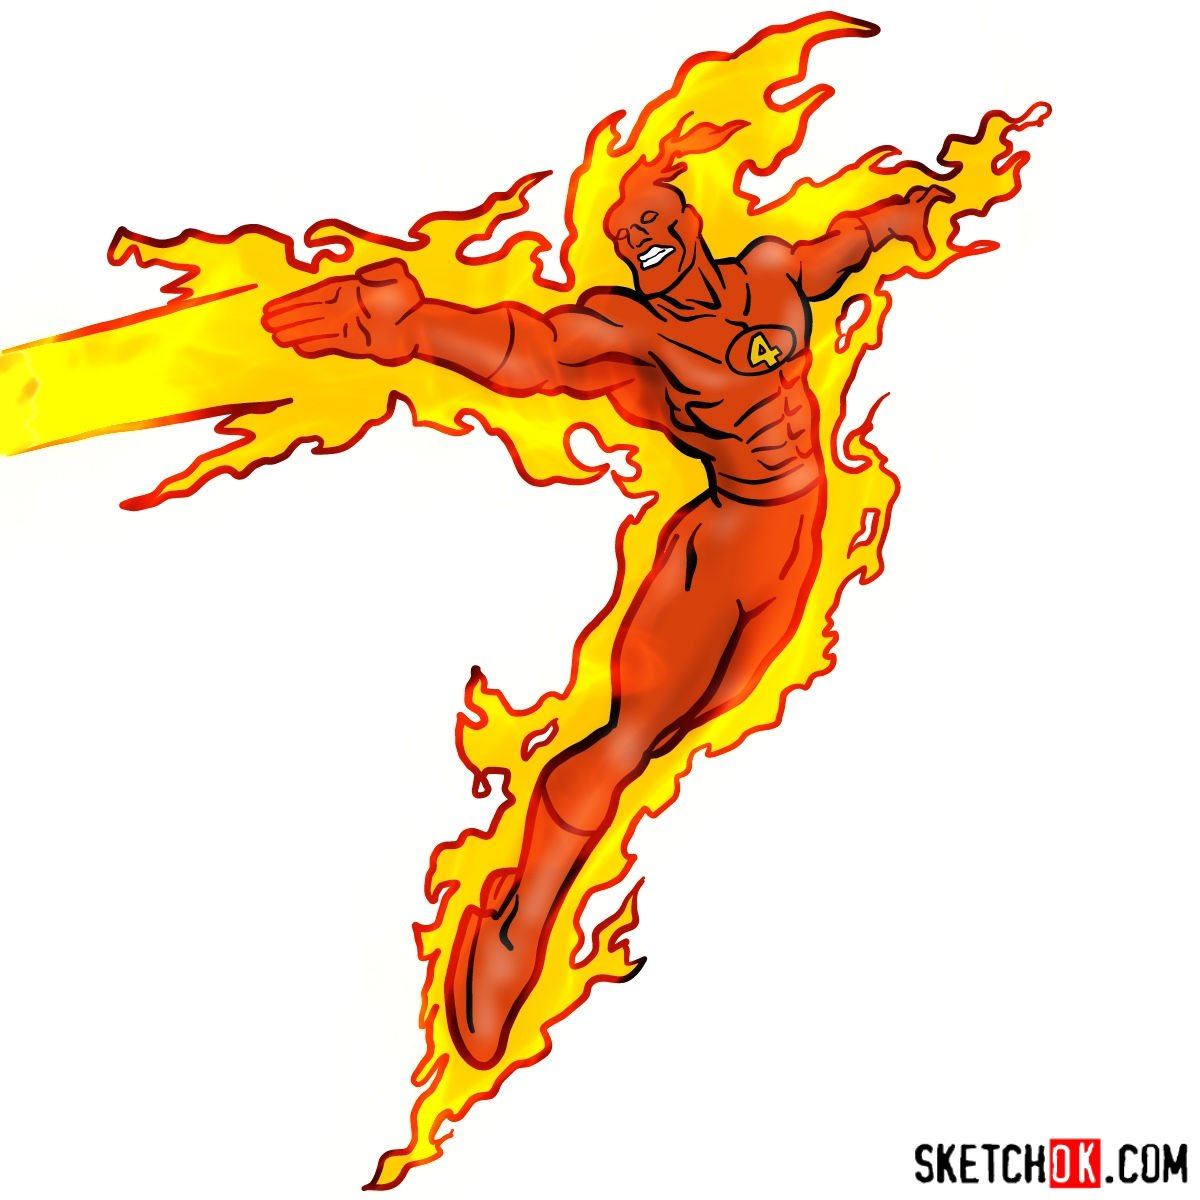 How to draw The Human Torch from Fantastic Four